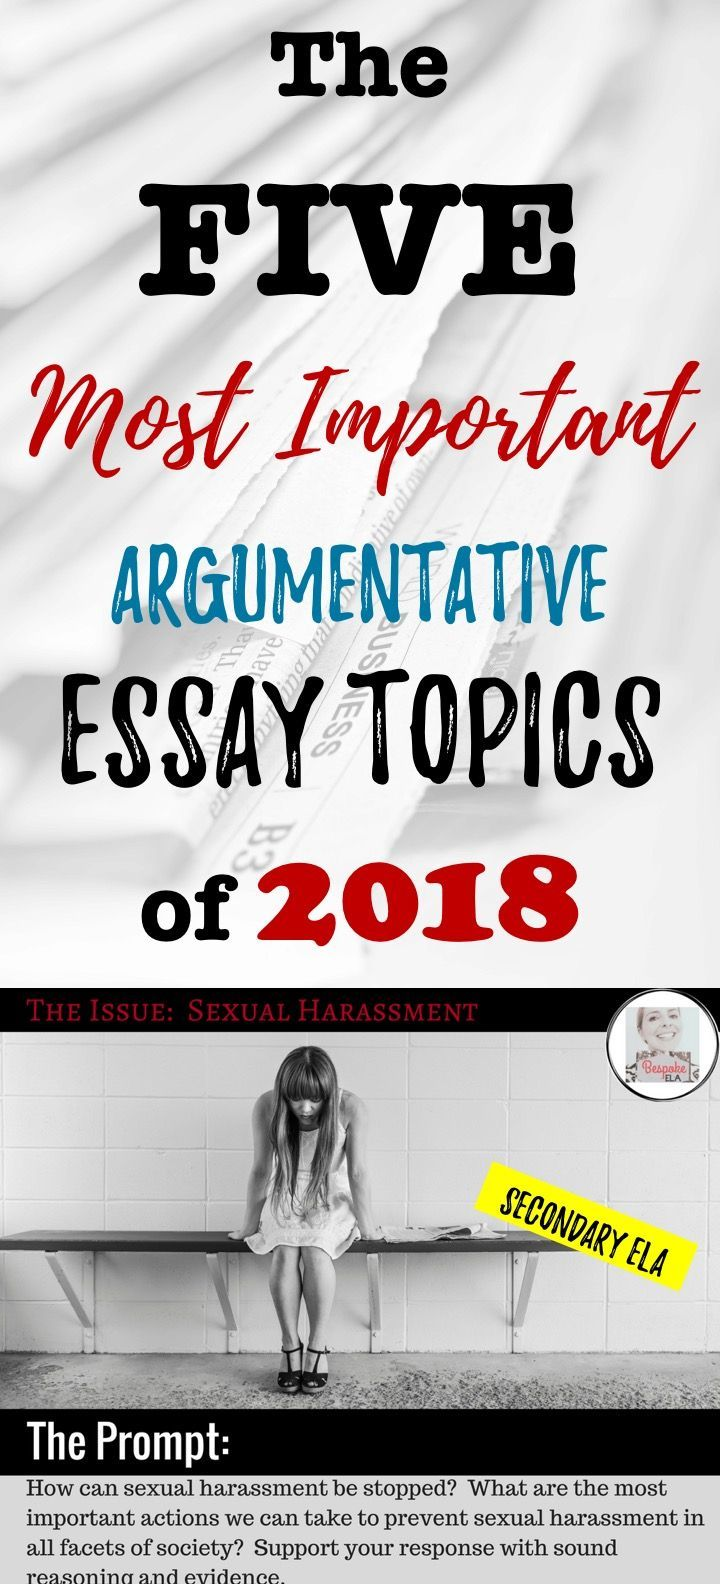 005 Argumentative Topics Research Paper Unforgettable 2018 Medical About Mental Illness Full